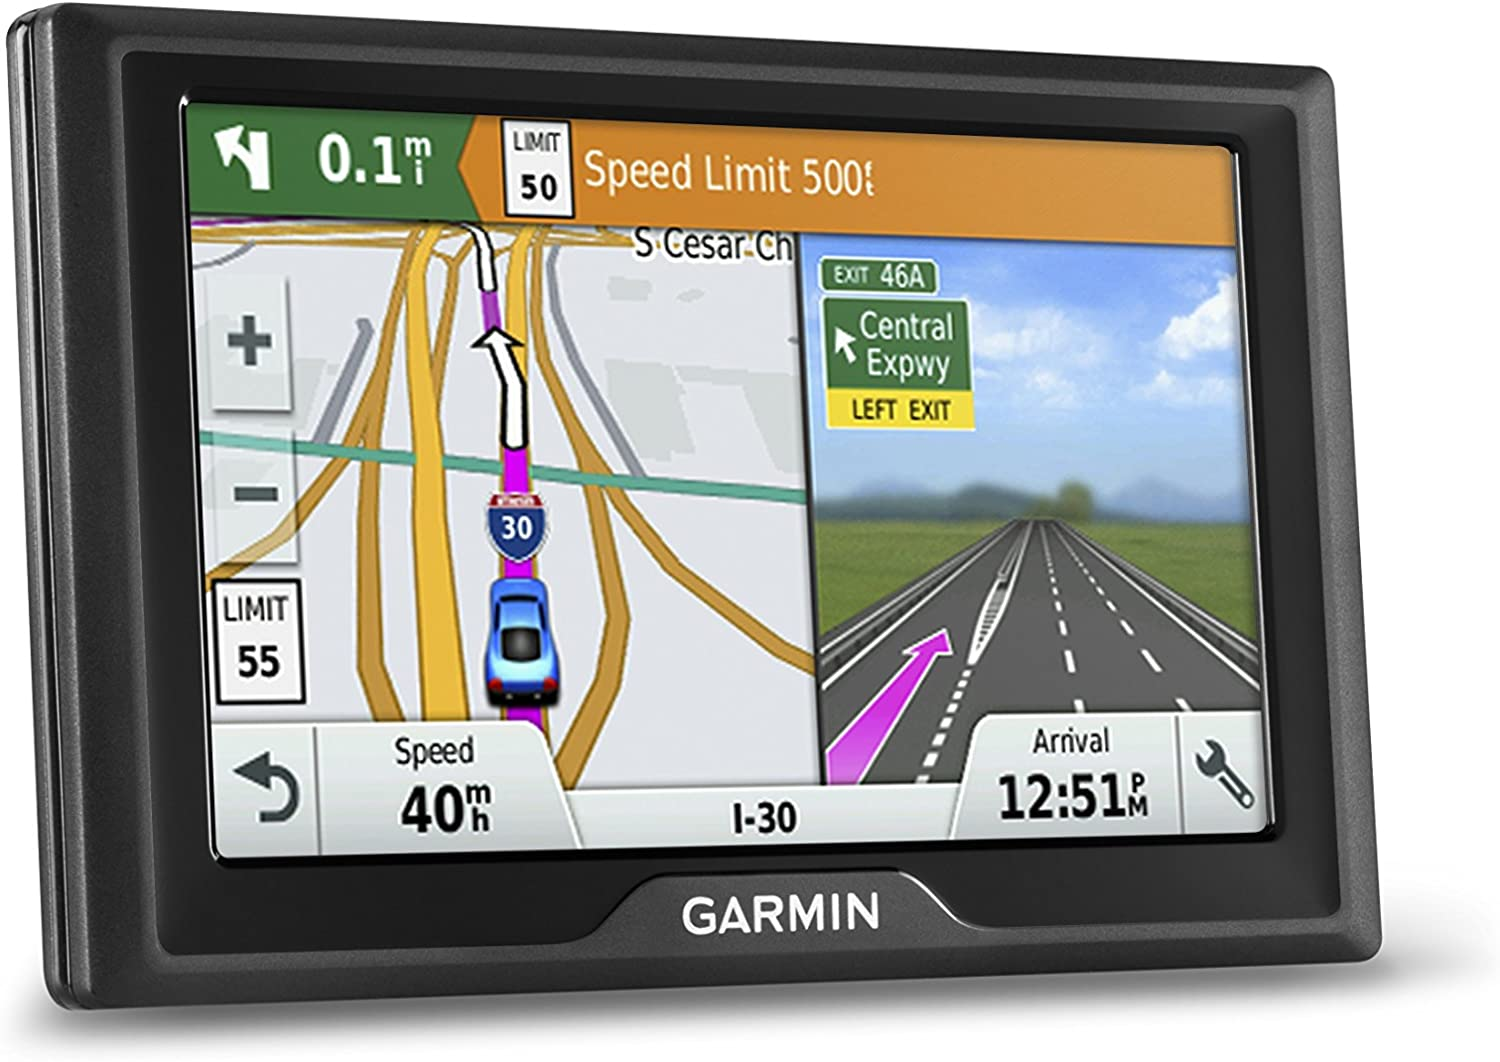 Garmin Drive 50 USA LM GPS Navigator System with Lifetime Maps, Spoken Turn-By-Turn Directions, Direct Access, Driver Alerts, and Foursquare Data, (Renewed)